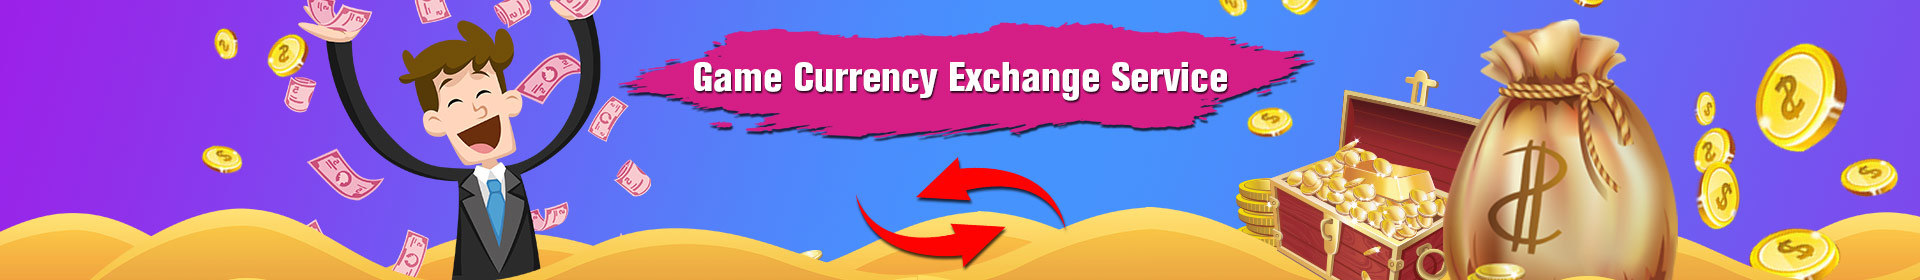 Game Currency Exchange Service